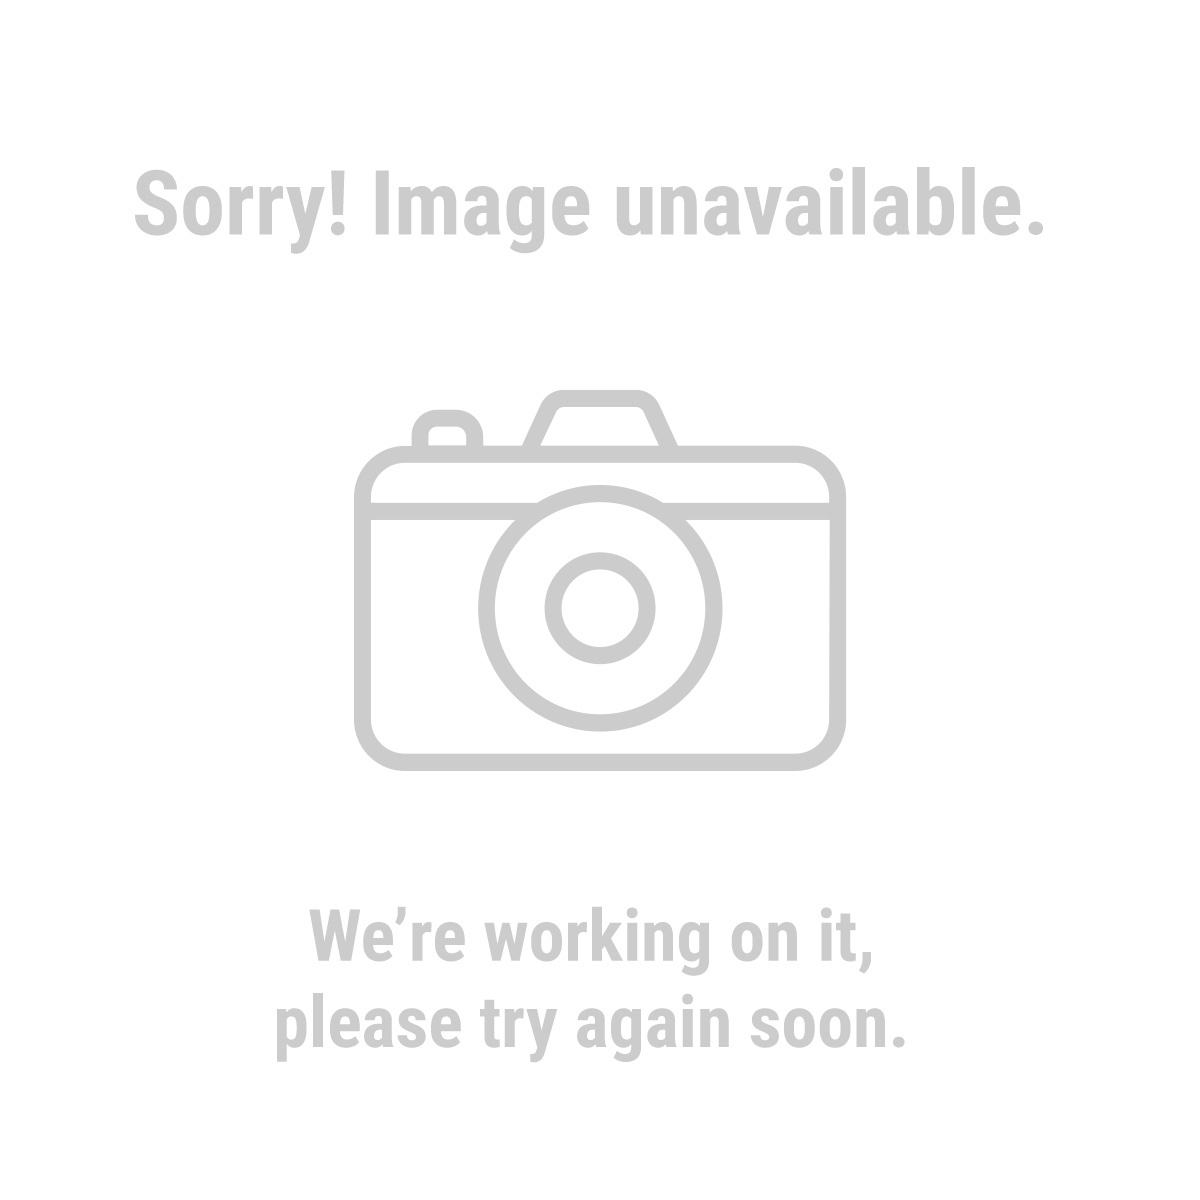 One Stop Gardens 67638 Contractor Grade Trash Bags, Pack of 20